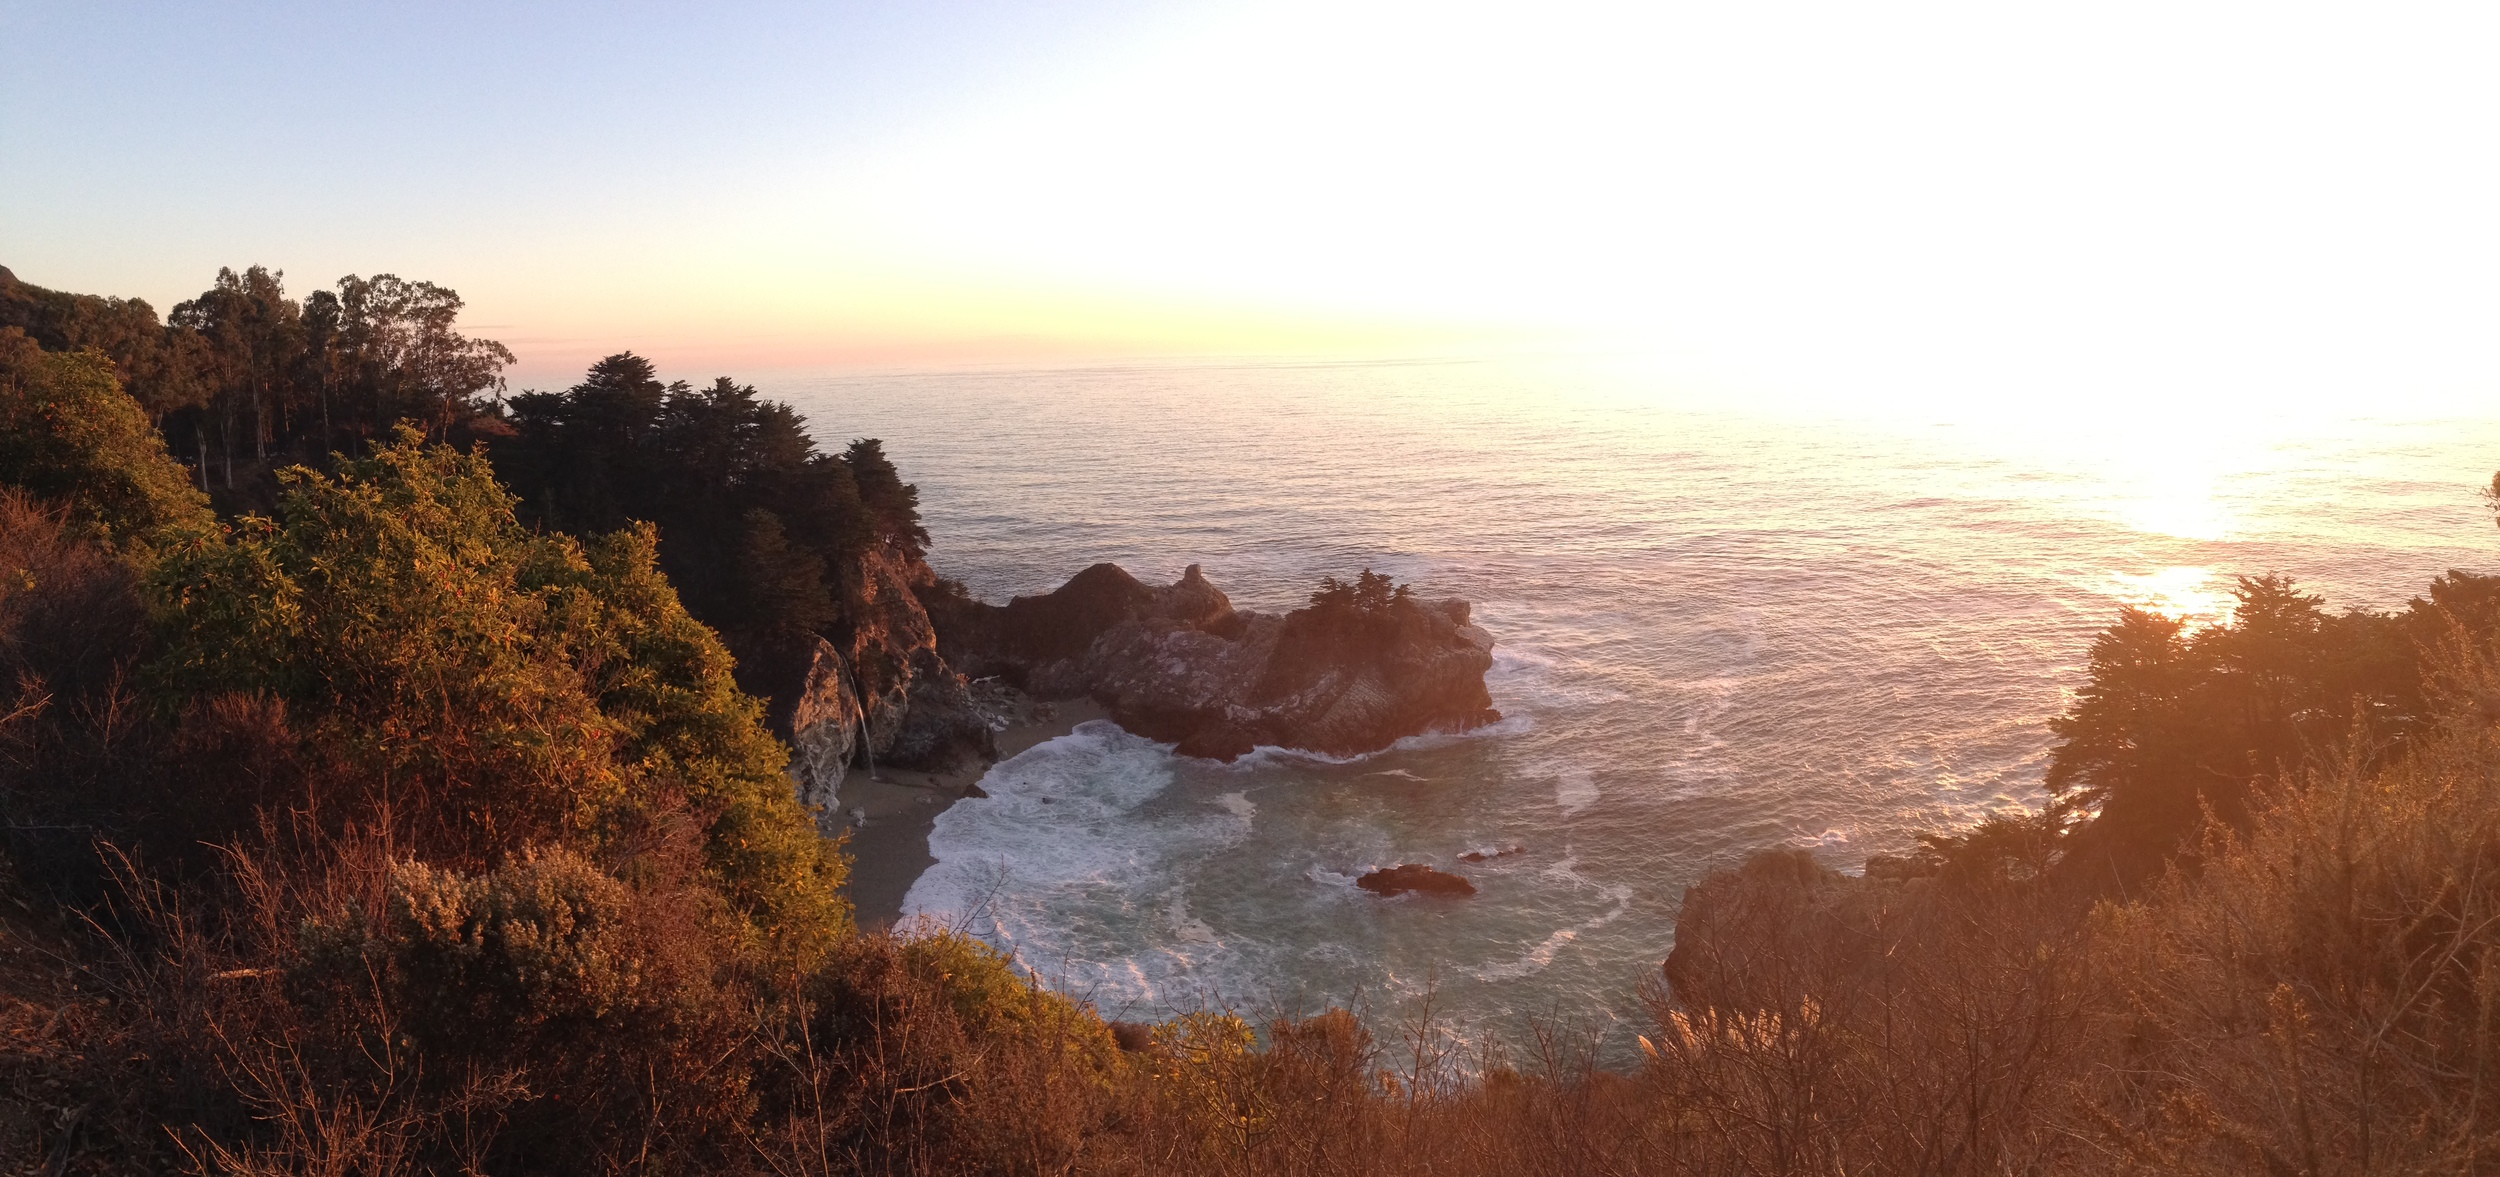 McWay Falls just before sunset